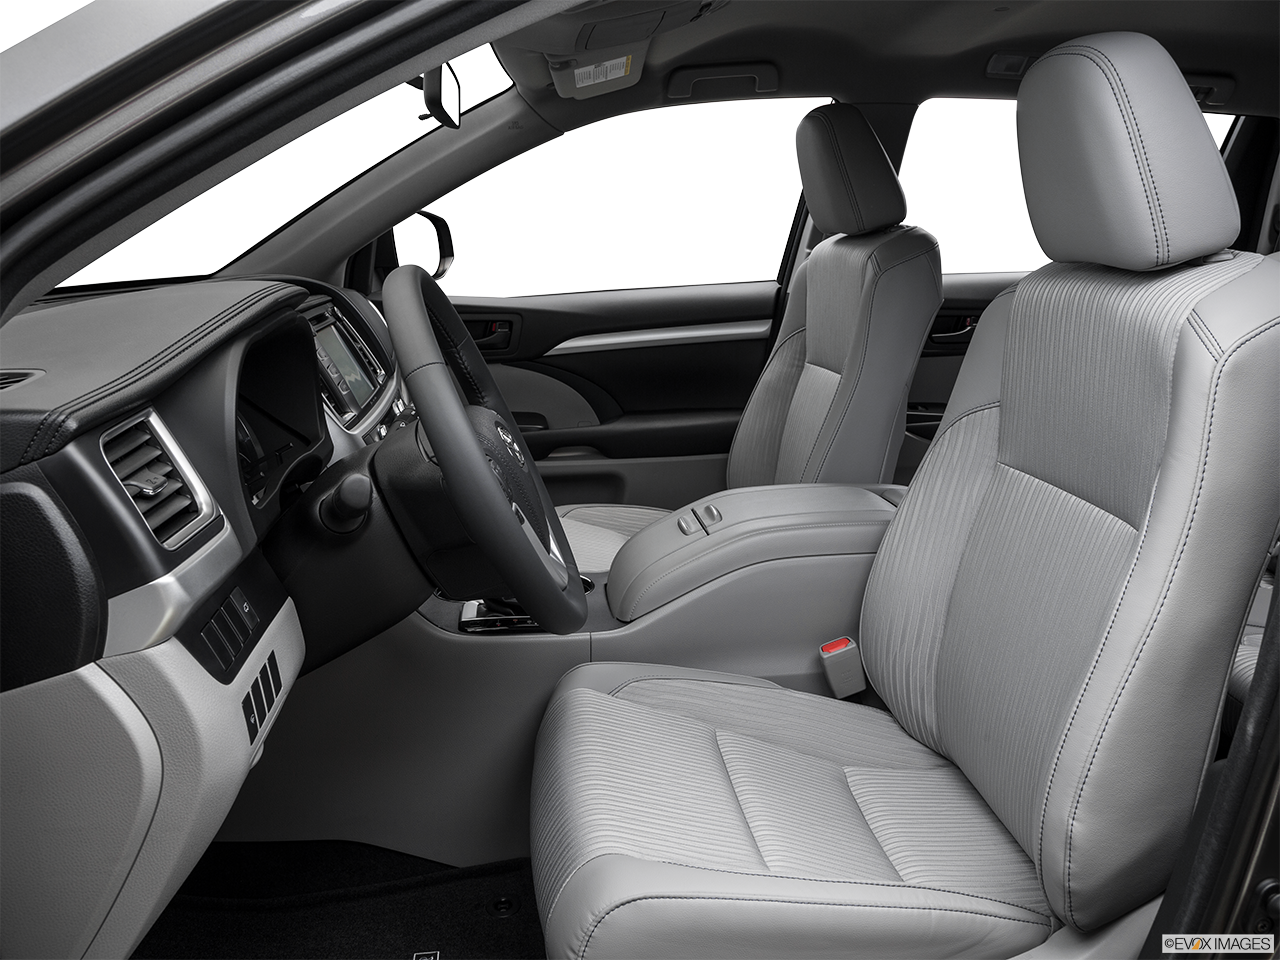 Research The 2016 Toyota Highlander in Madera